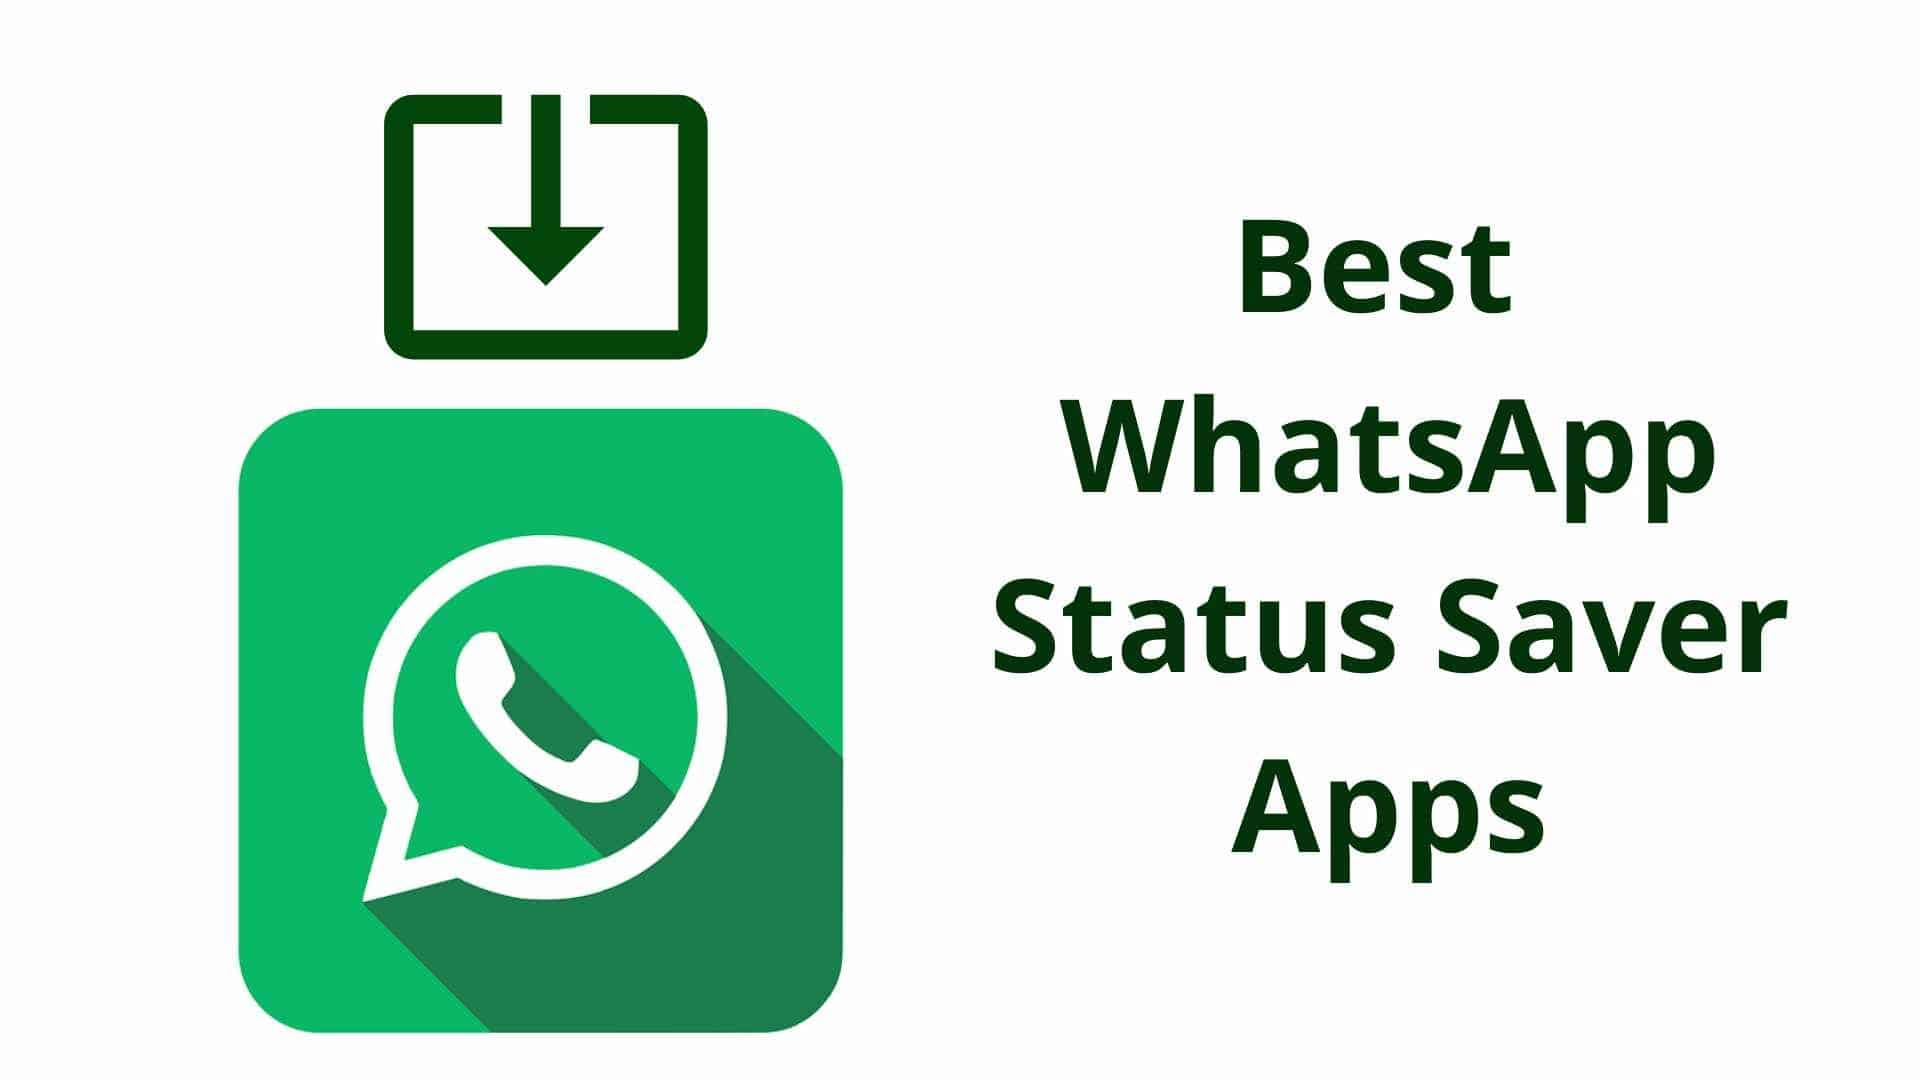 Image 1: Best WhatsApp Video Status Apps for Android